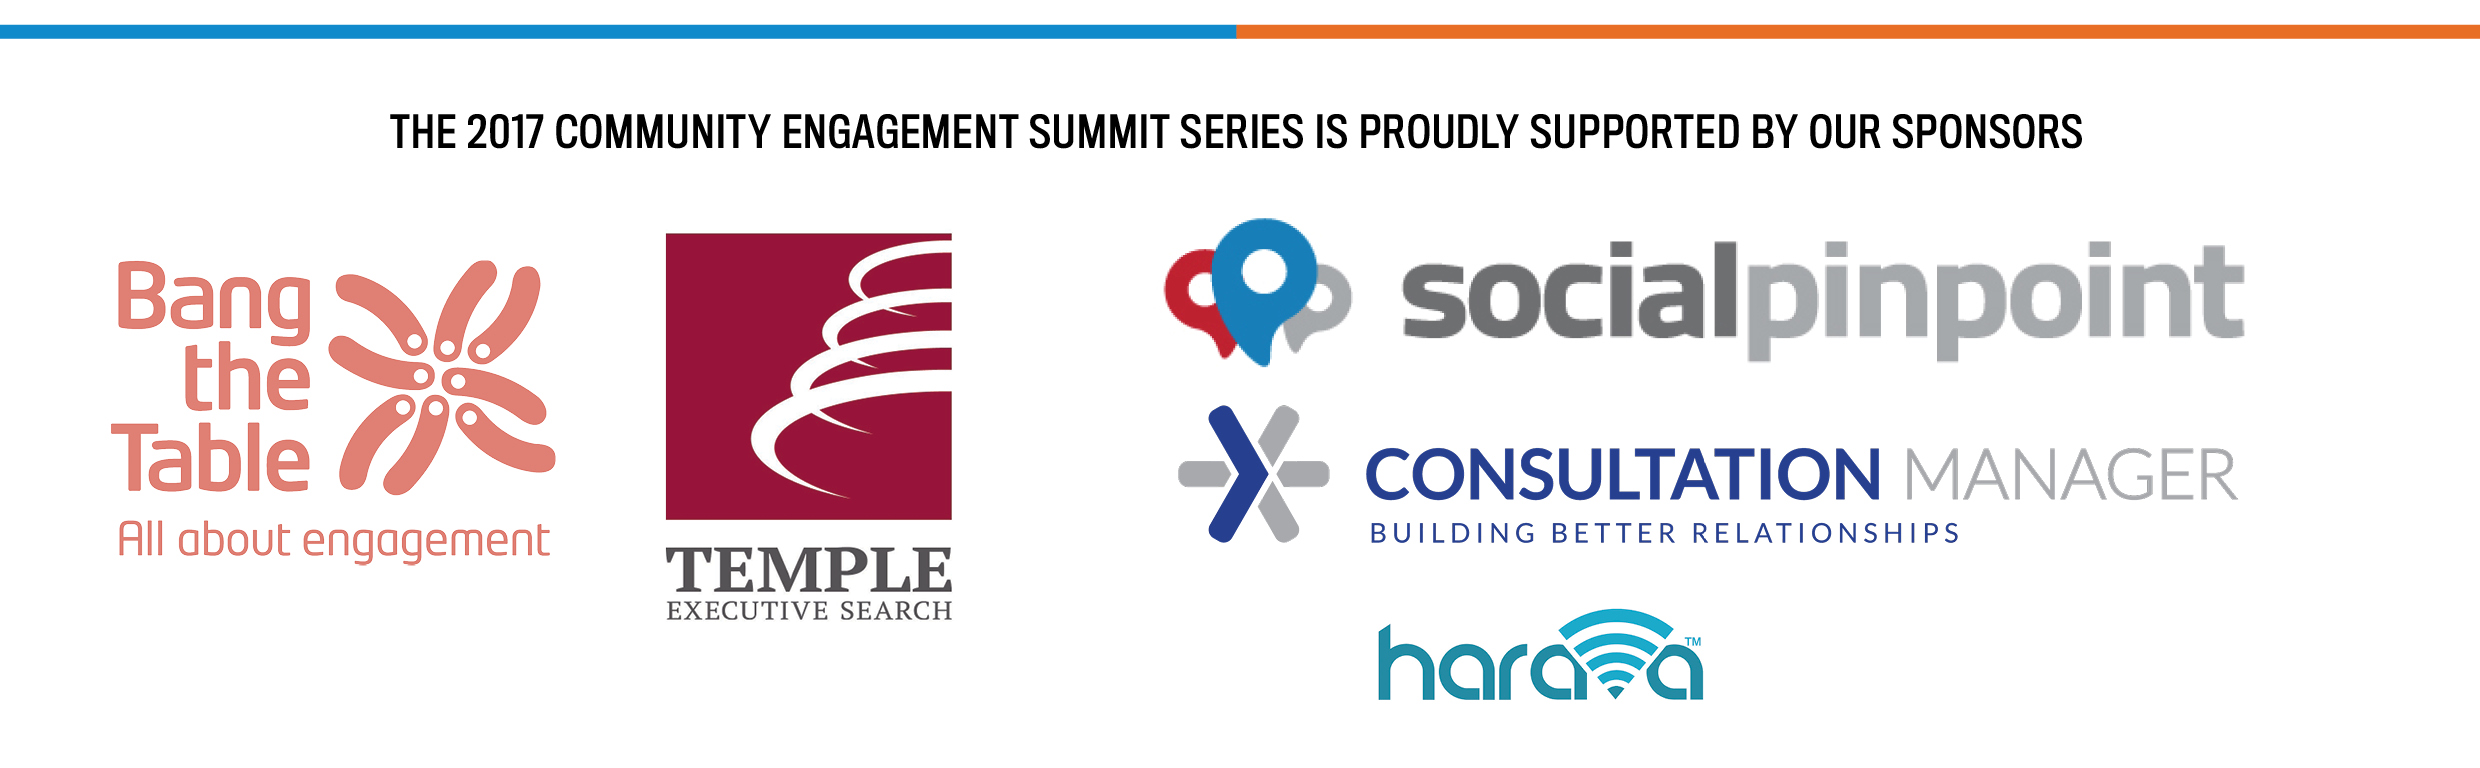 Community Engagemement Summit Series Sponsors